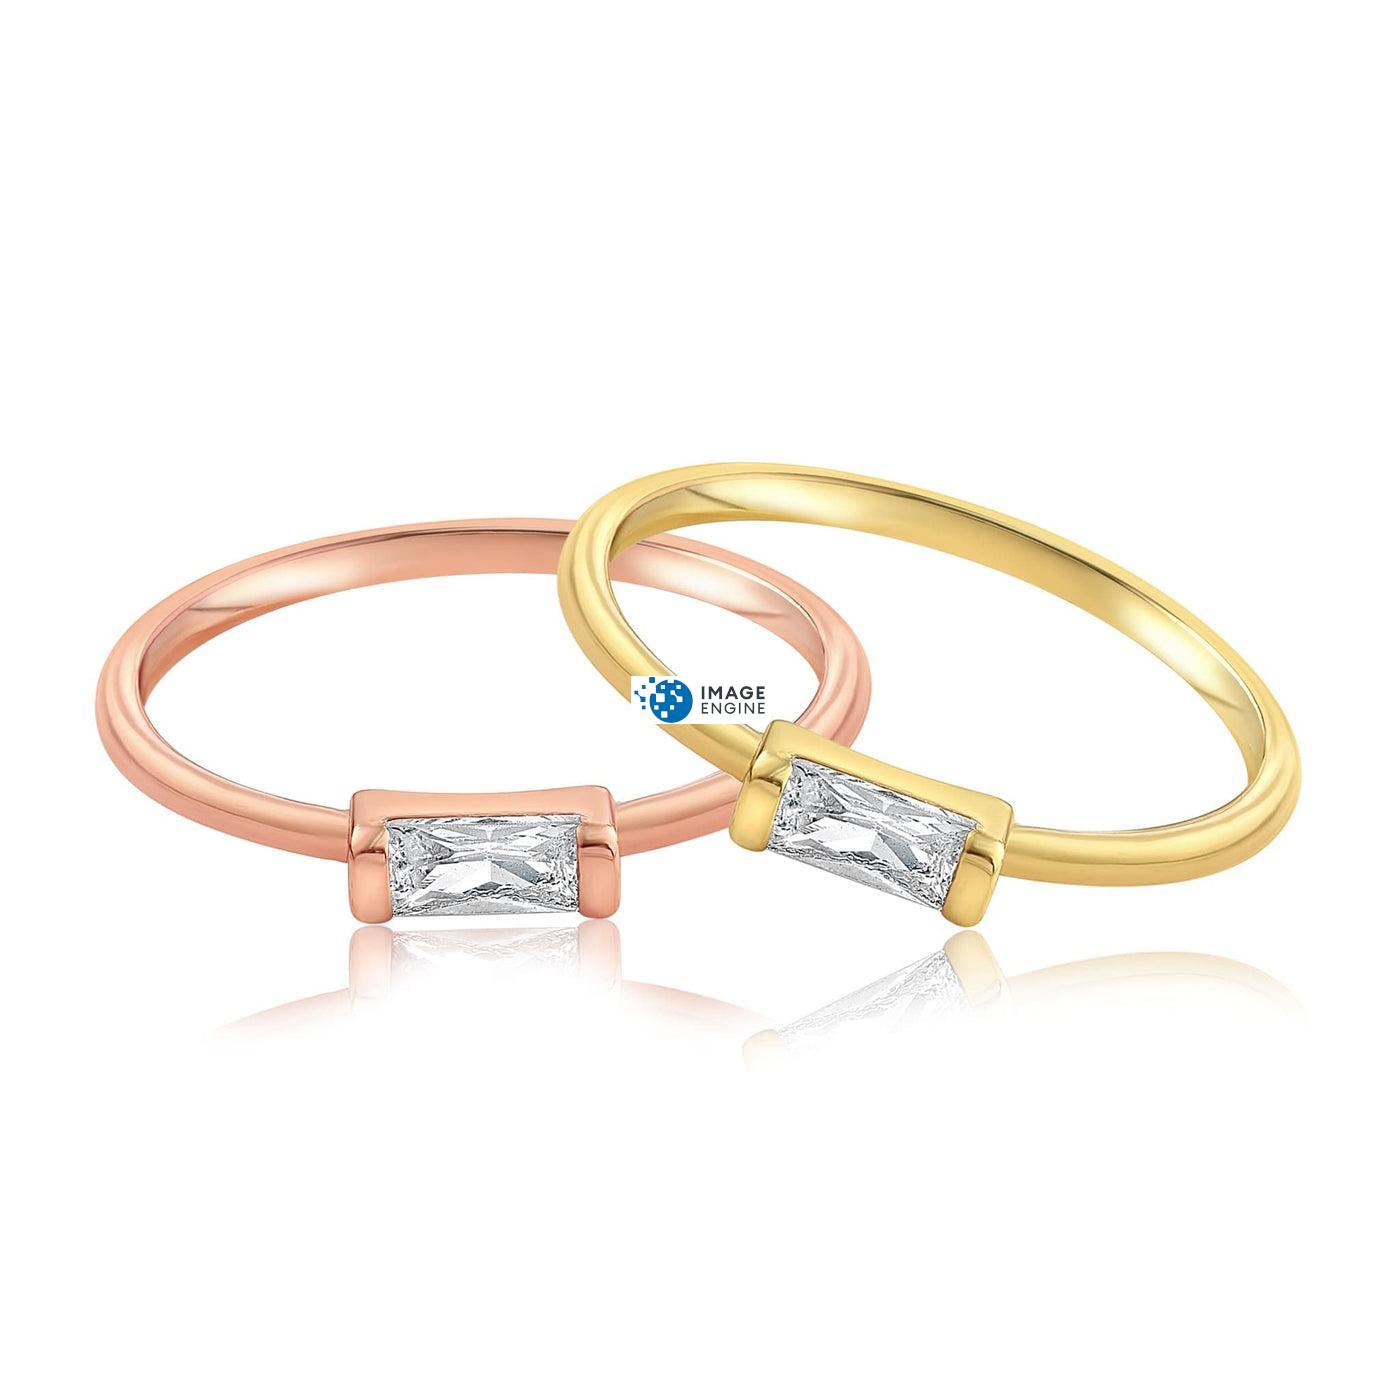 Moonie Glass Geometric Ring - Front View Side by Side - 18K Rose Gold Vermeil and 18K Yellow Gold Vermeil